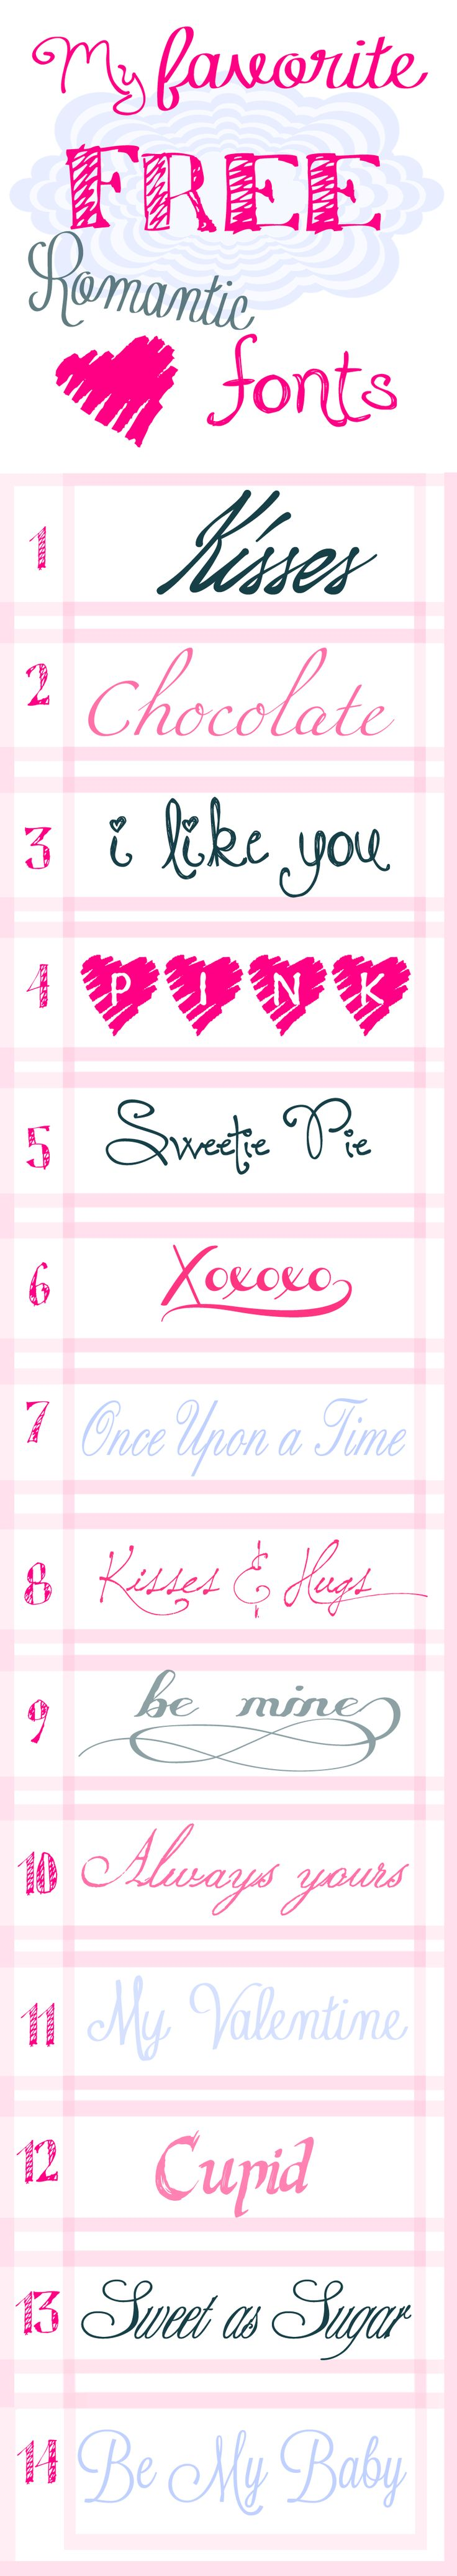 Romantic Free Fonts 14 for Valentine's Day!